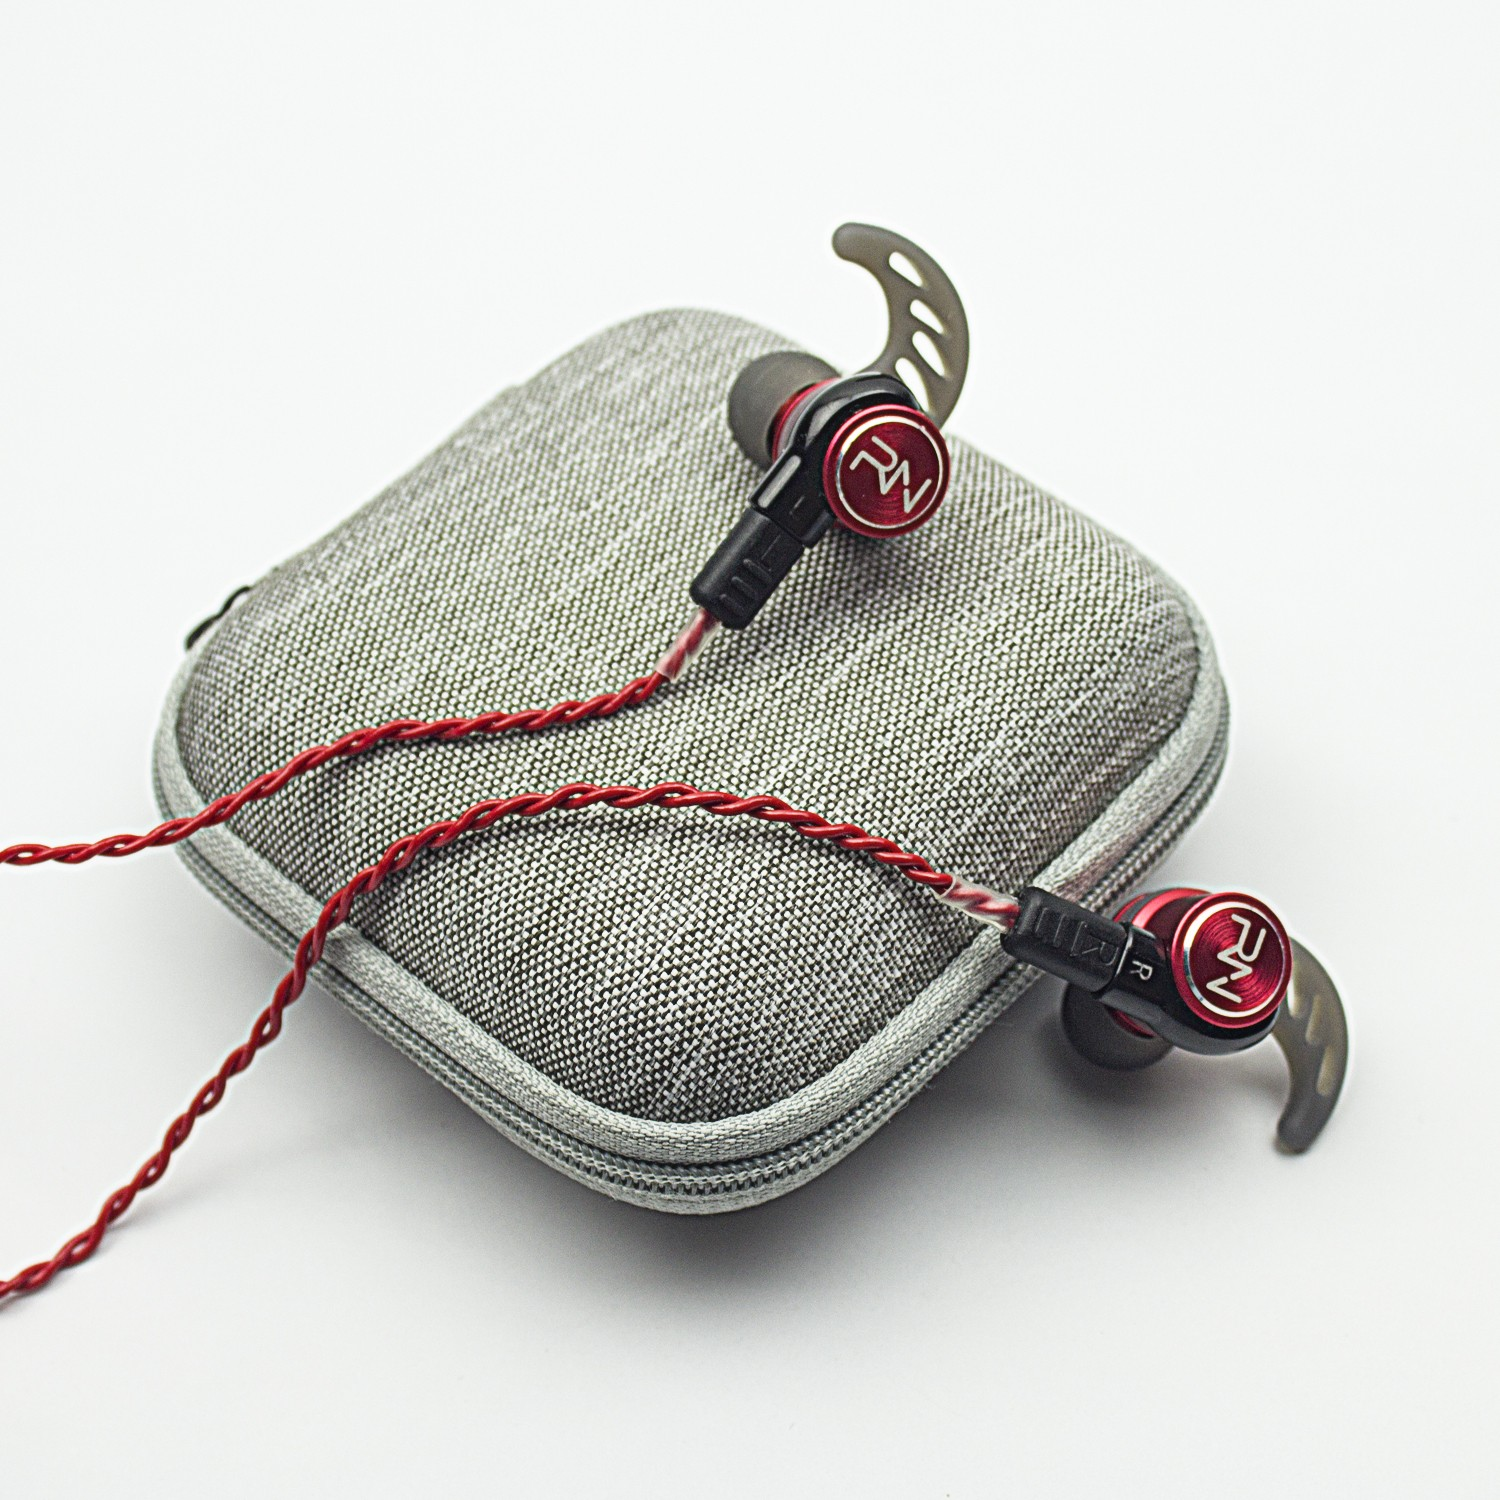 RevoNext earphone pouch best supplier bulk buy-9